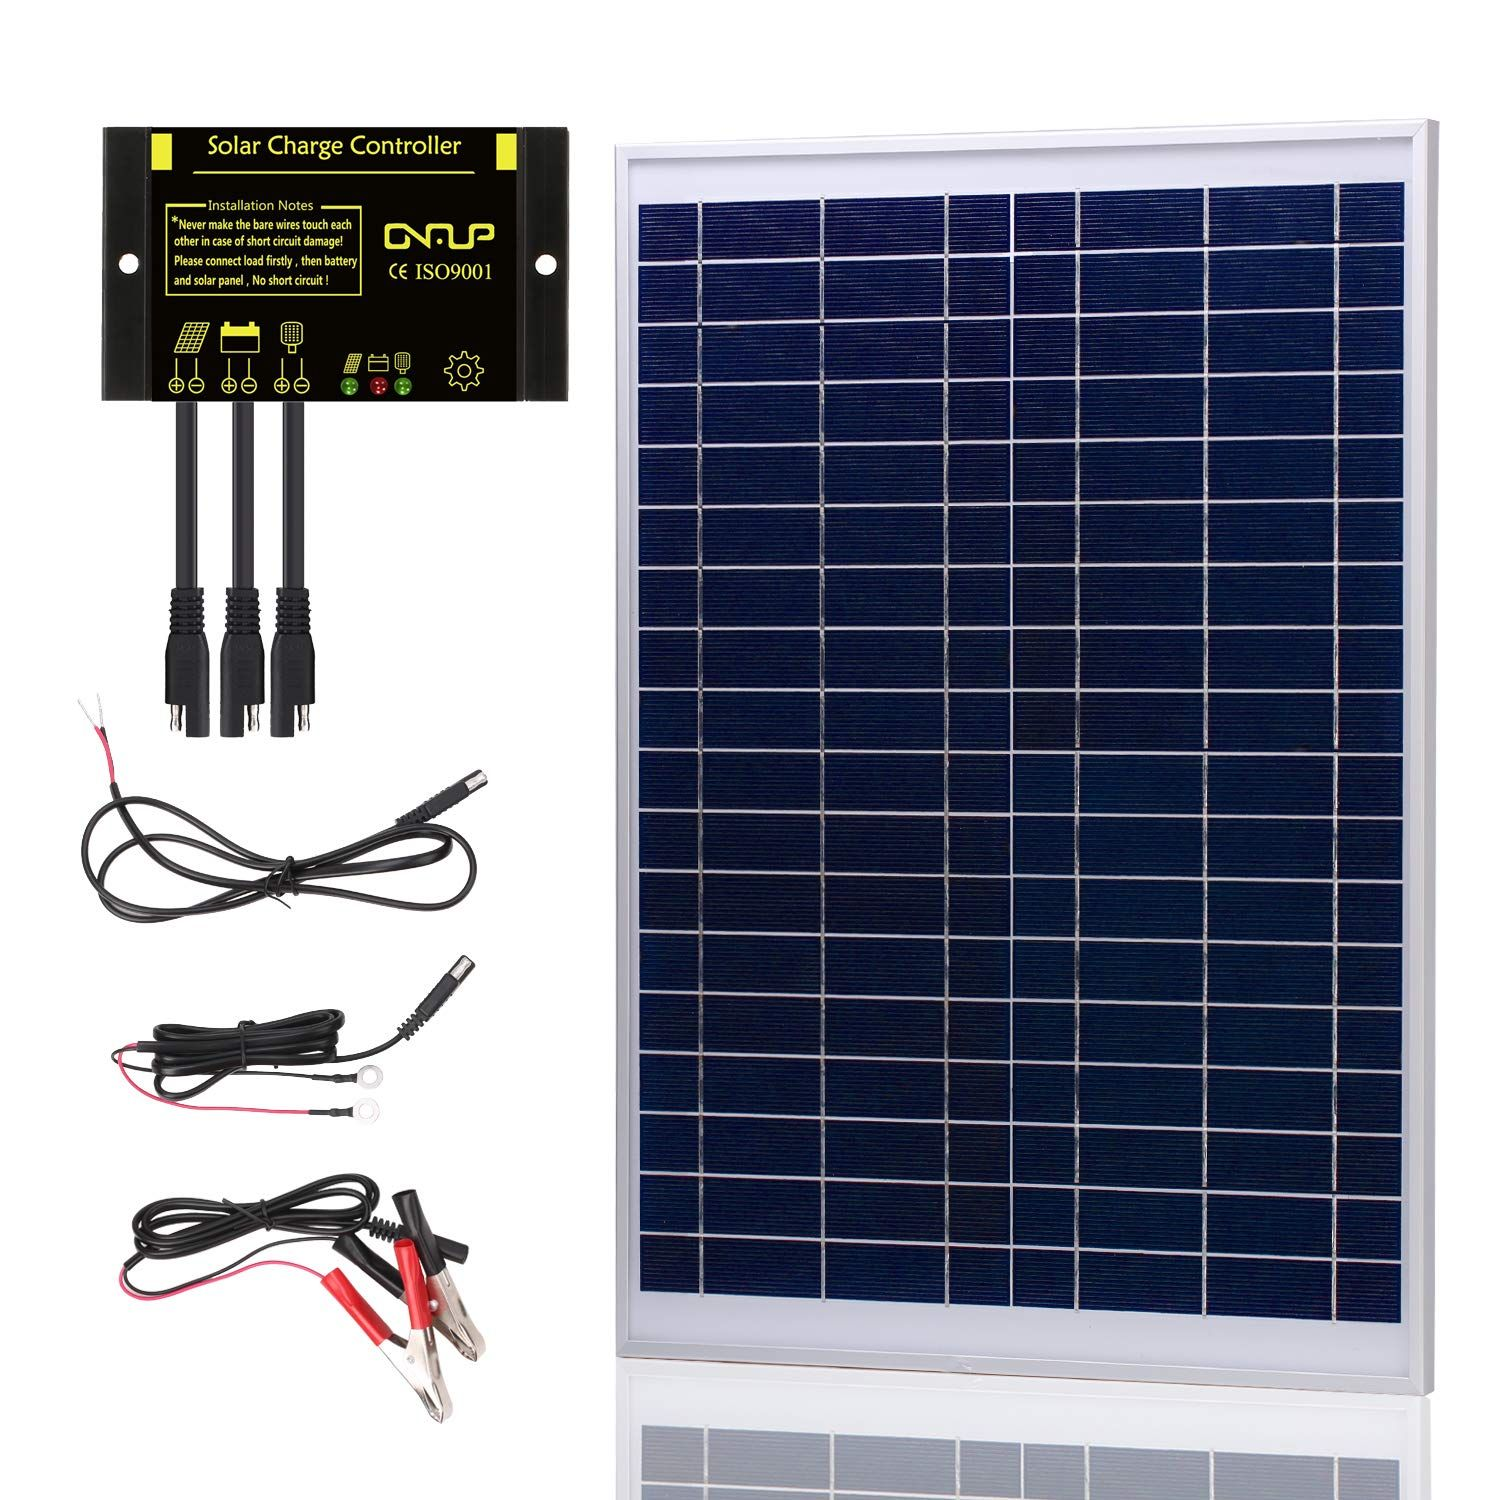 Suner Power Upgraded 20 Watts 12v Off Grid Solar Panel Kit Waterproof 20w Solar Panel Photocell 10a S Solar Panel Kits Solar Panels Off Grid Solar Panels